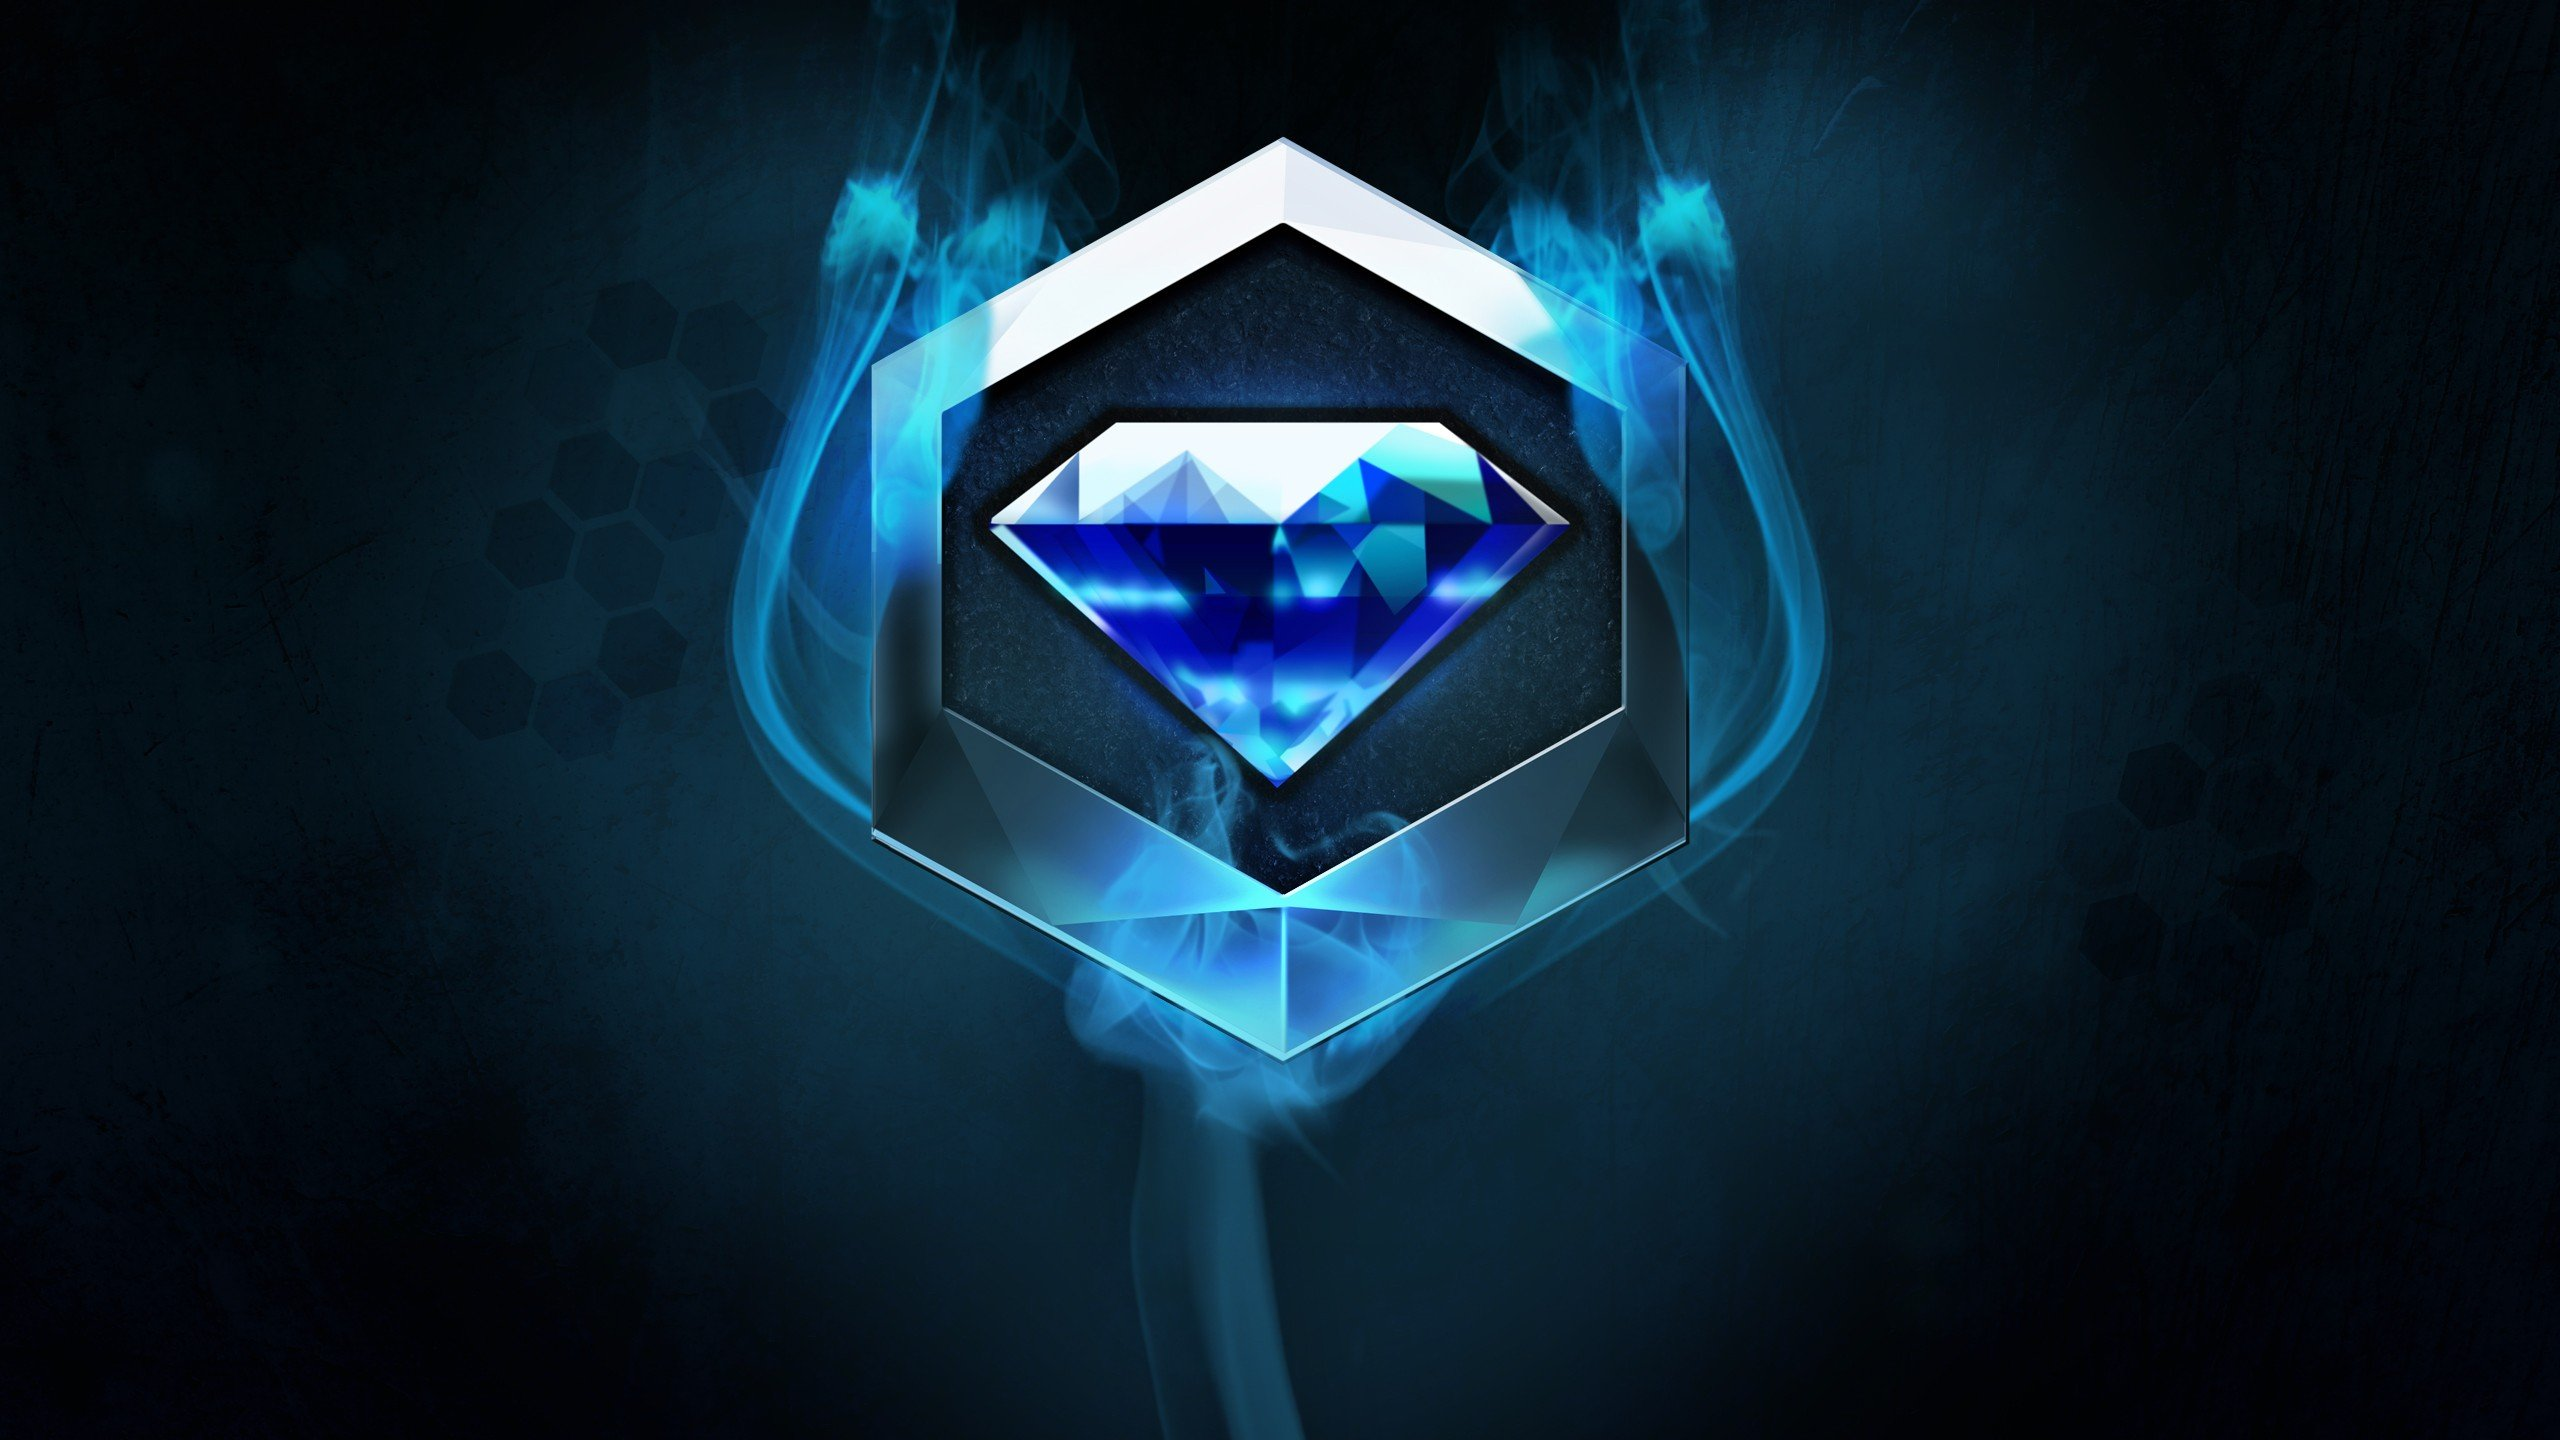 Download Diamond StarCraft Wallpaper 2560x1440 Wallpoper 335761 2560x1440